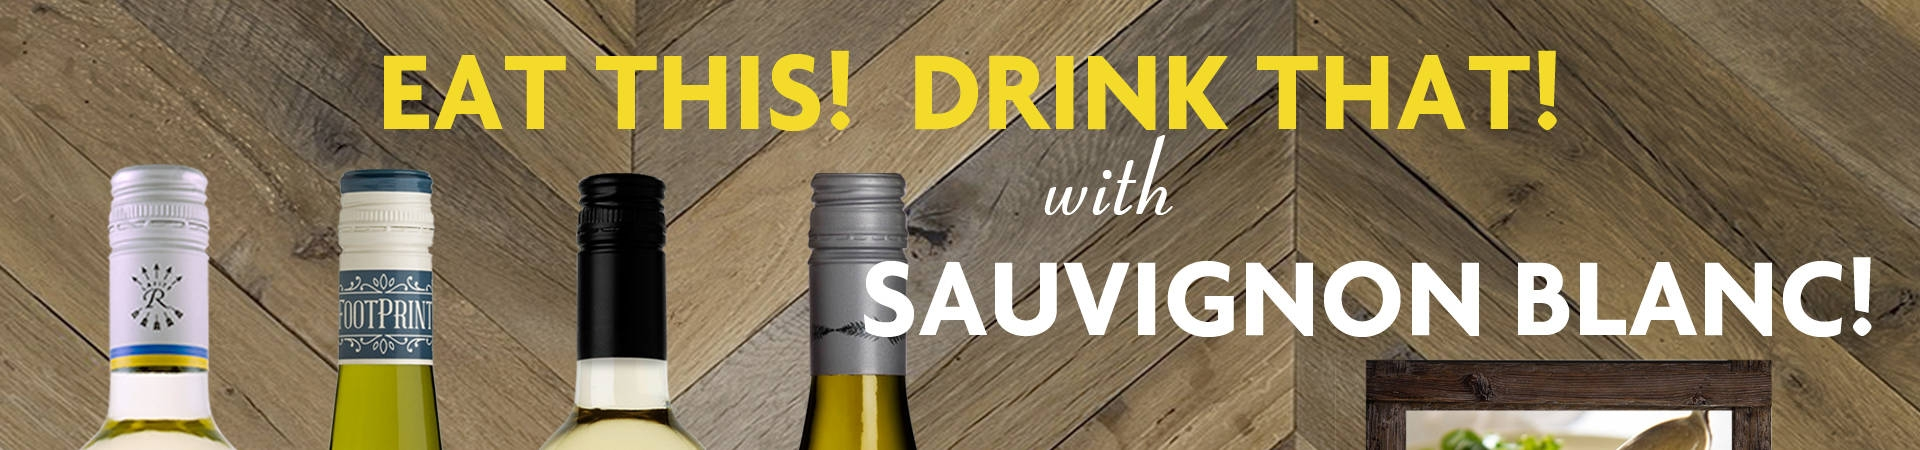 Eat This Drink That - Sauvignon Blanc